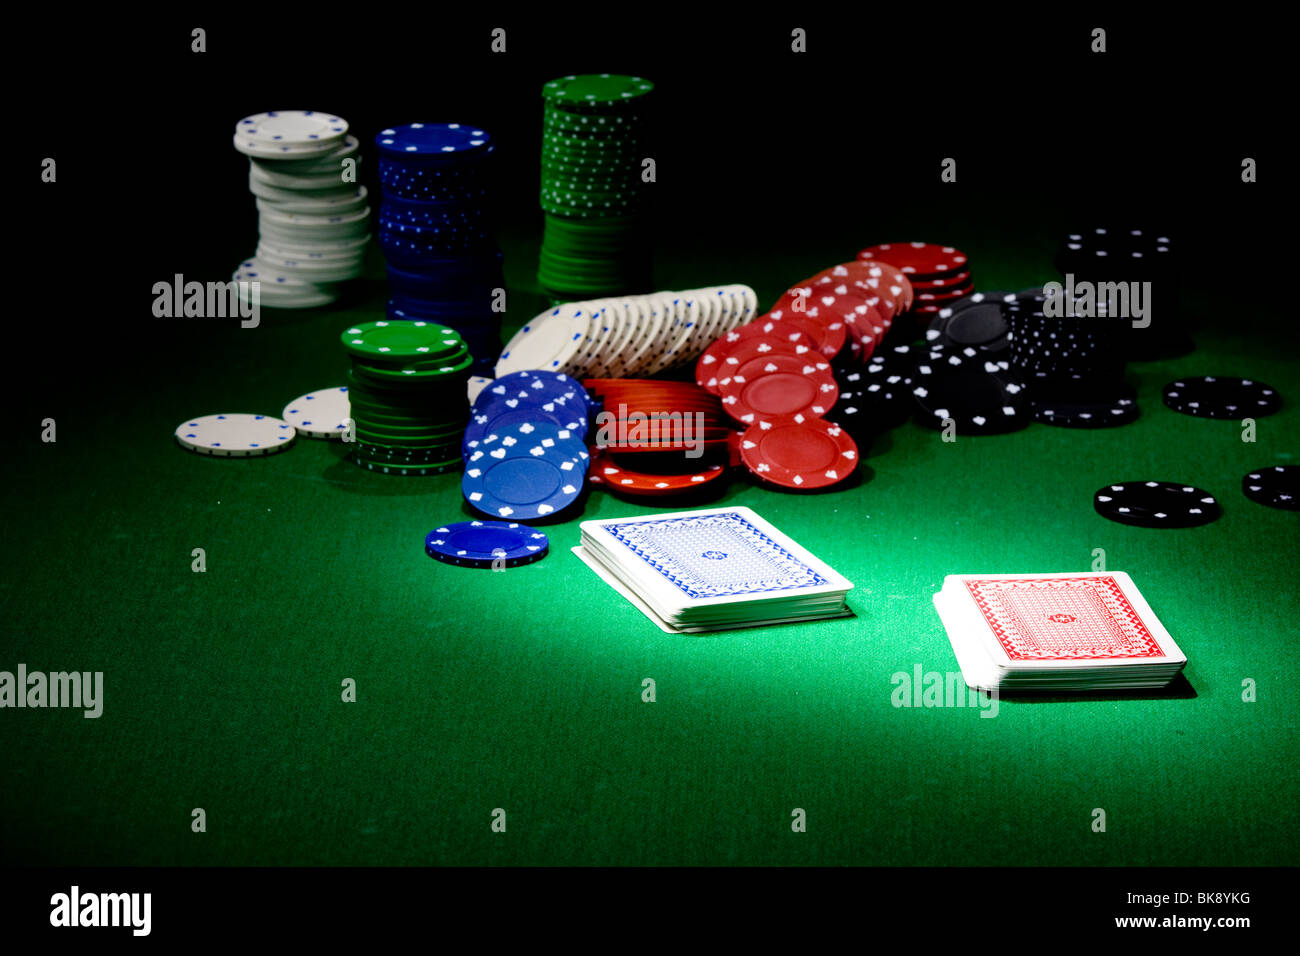 Poker Equipment On Green Table, Light Painting View